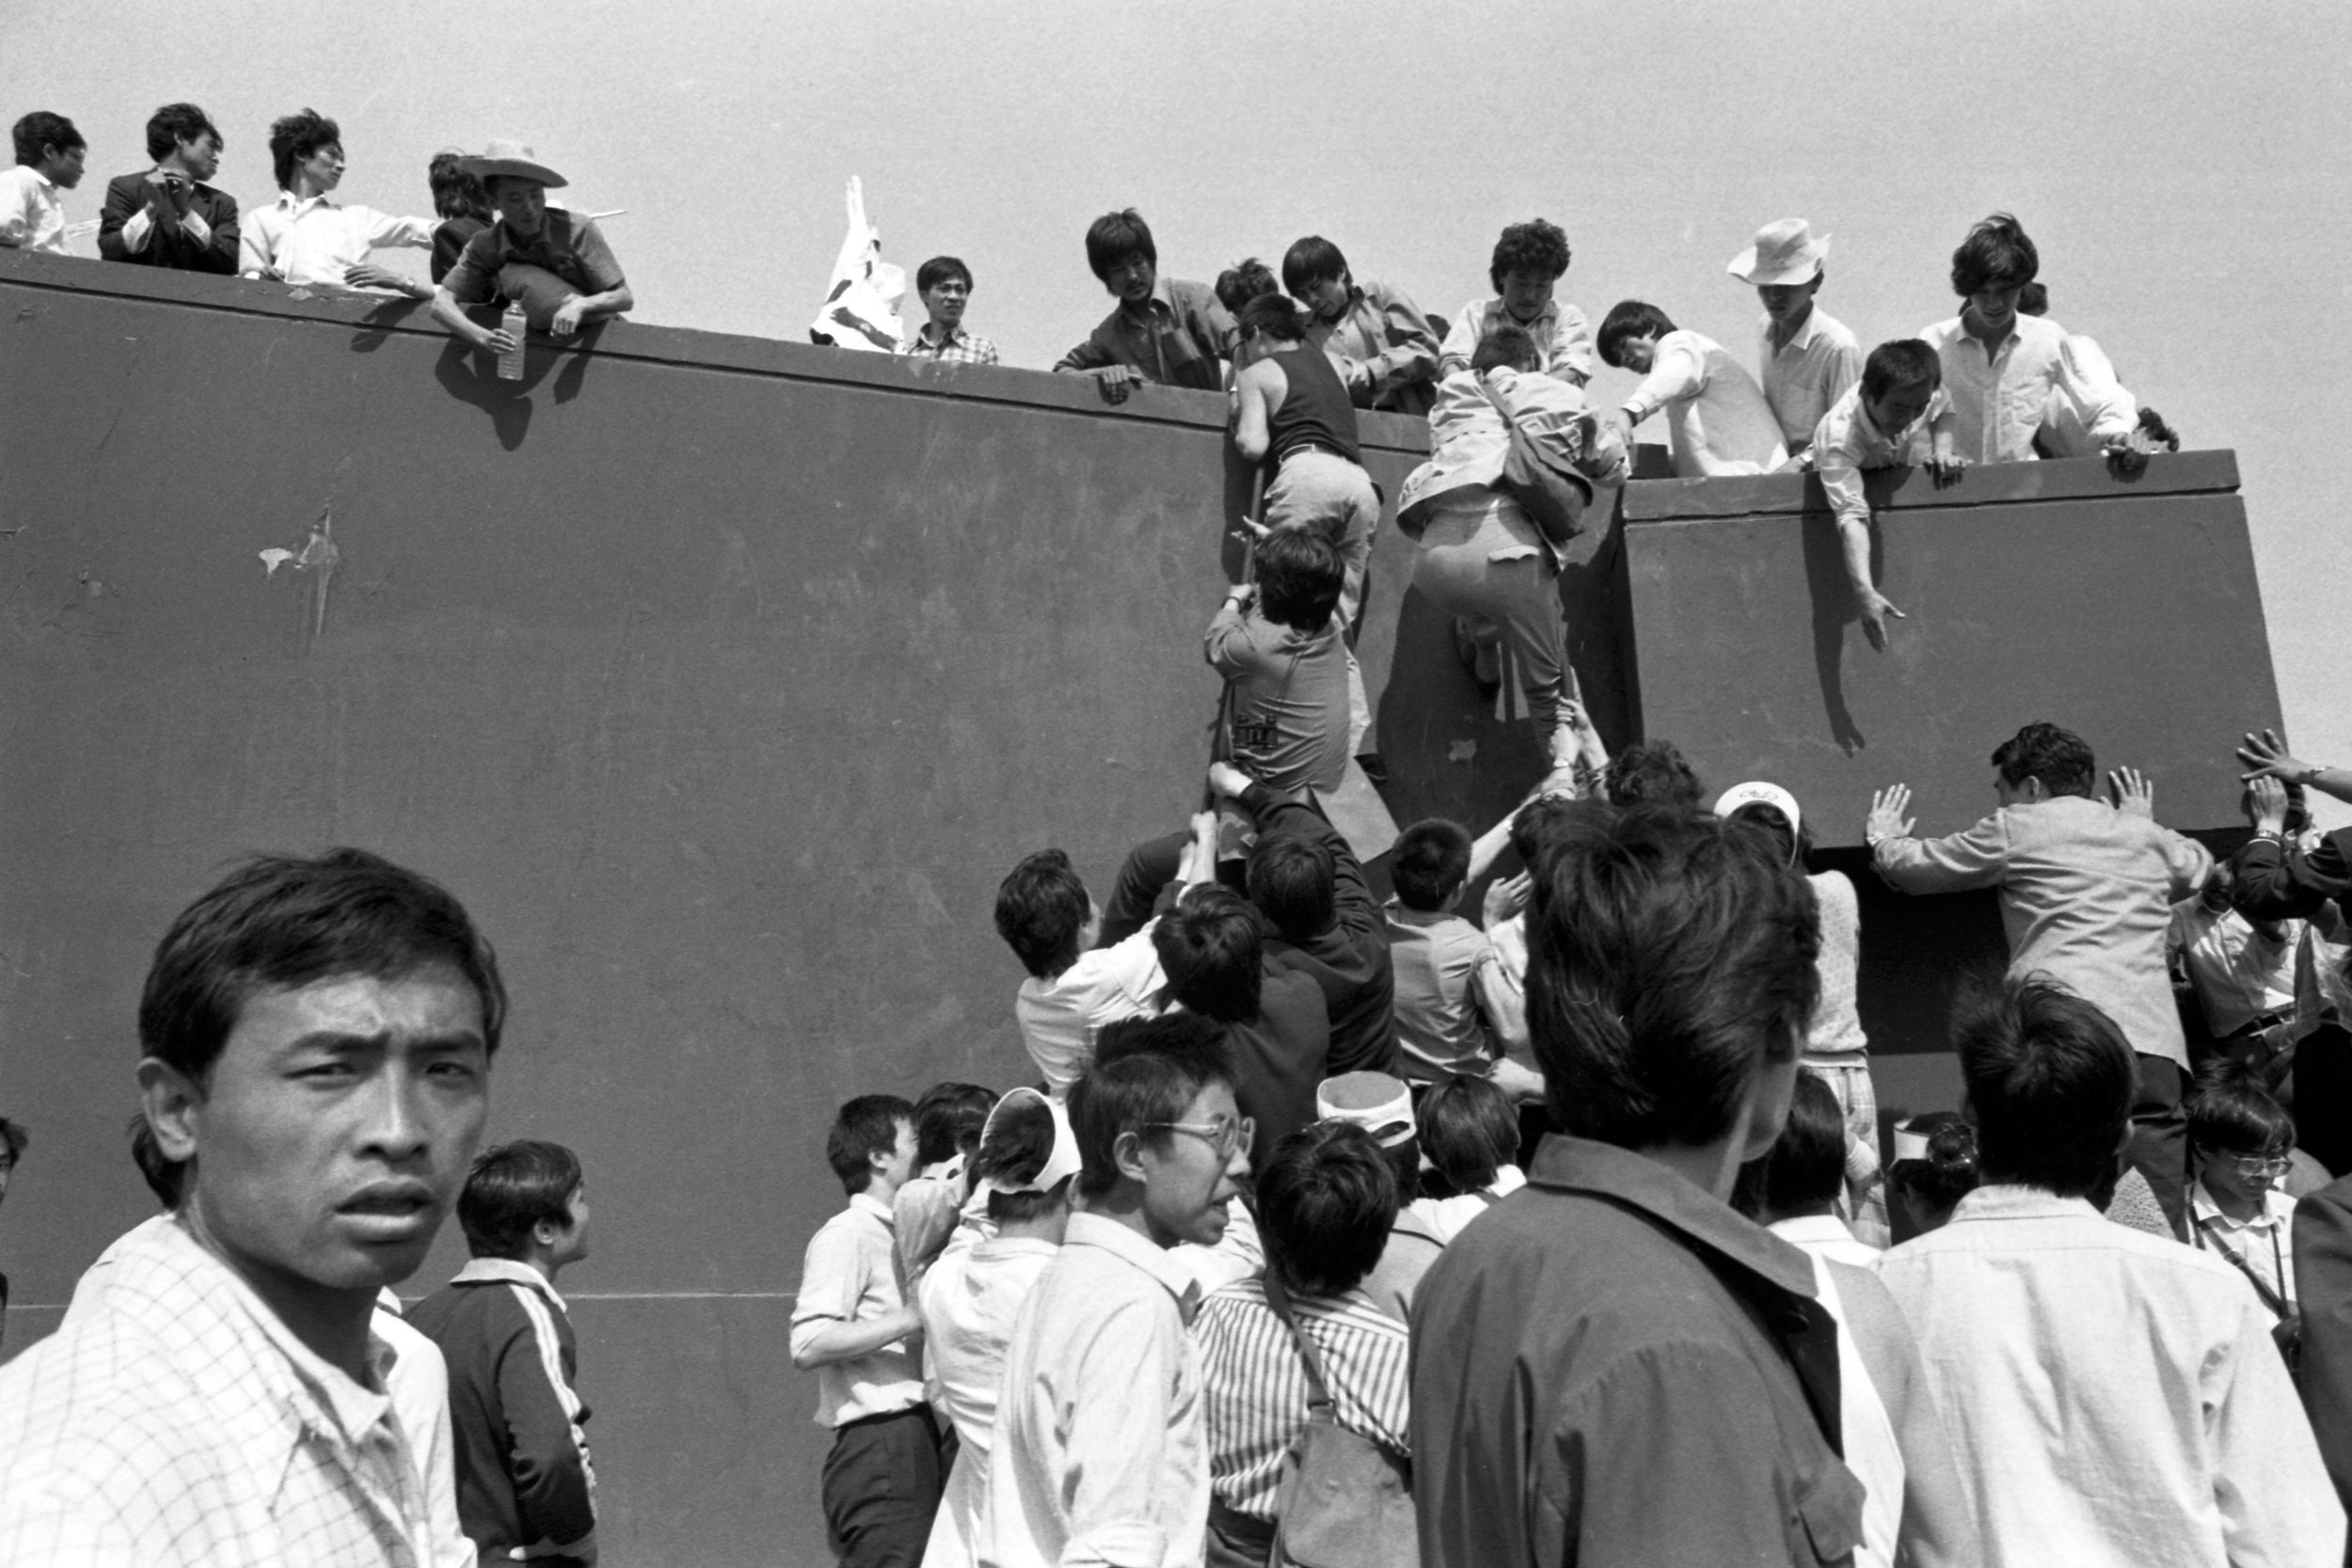 Protesters climb up the wall in Tiananmen Square. Photo taken on May 17, 1989. Photo credit: Hsieh San-tai, Howling 1989.